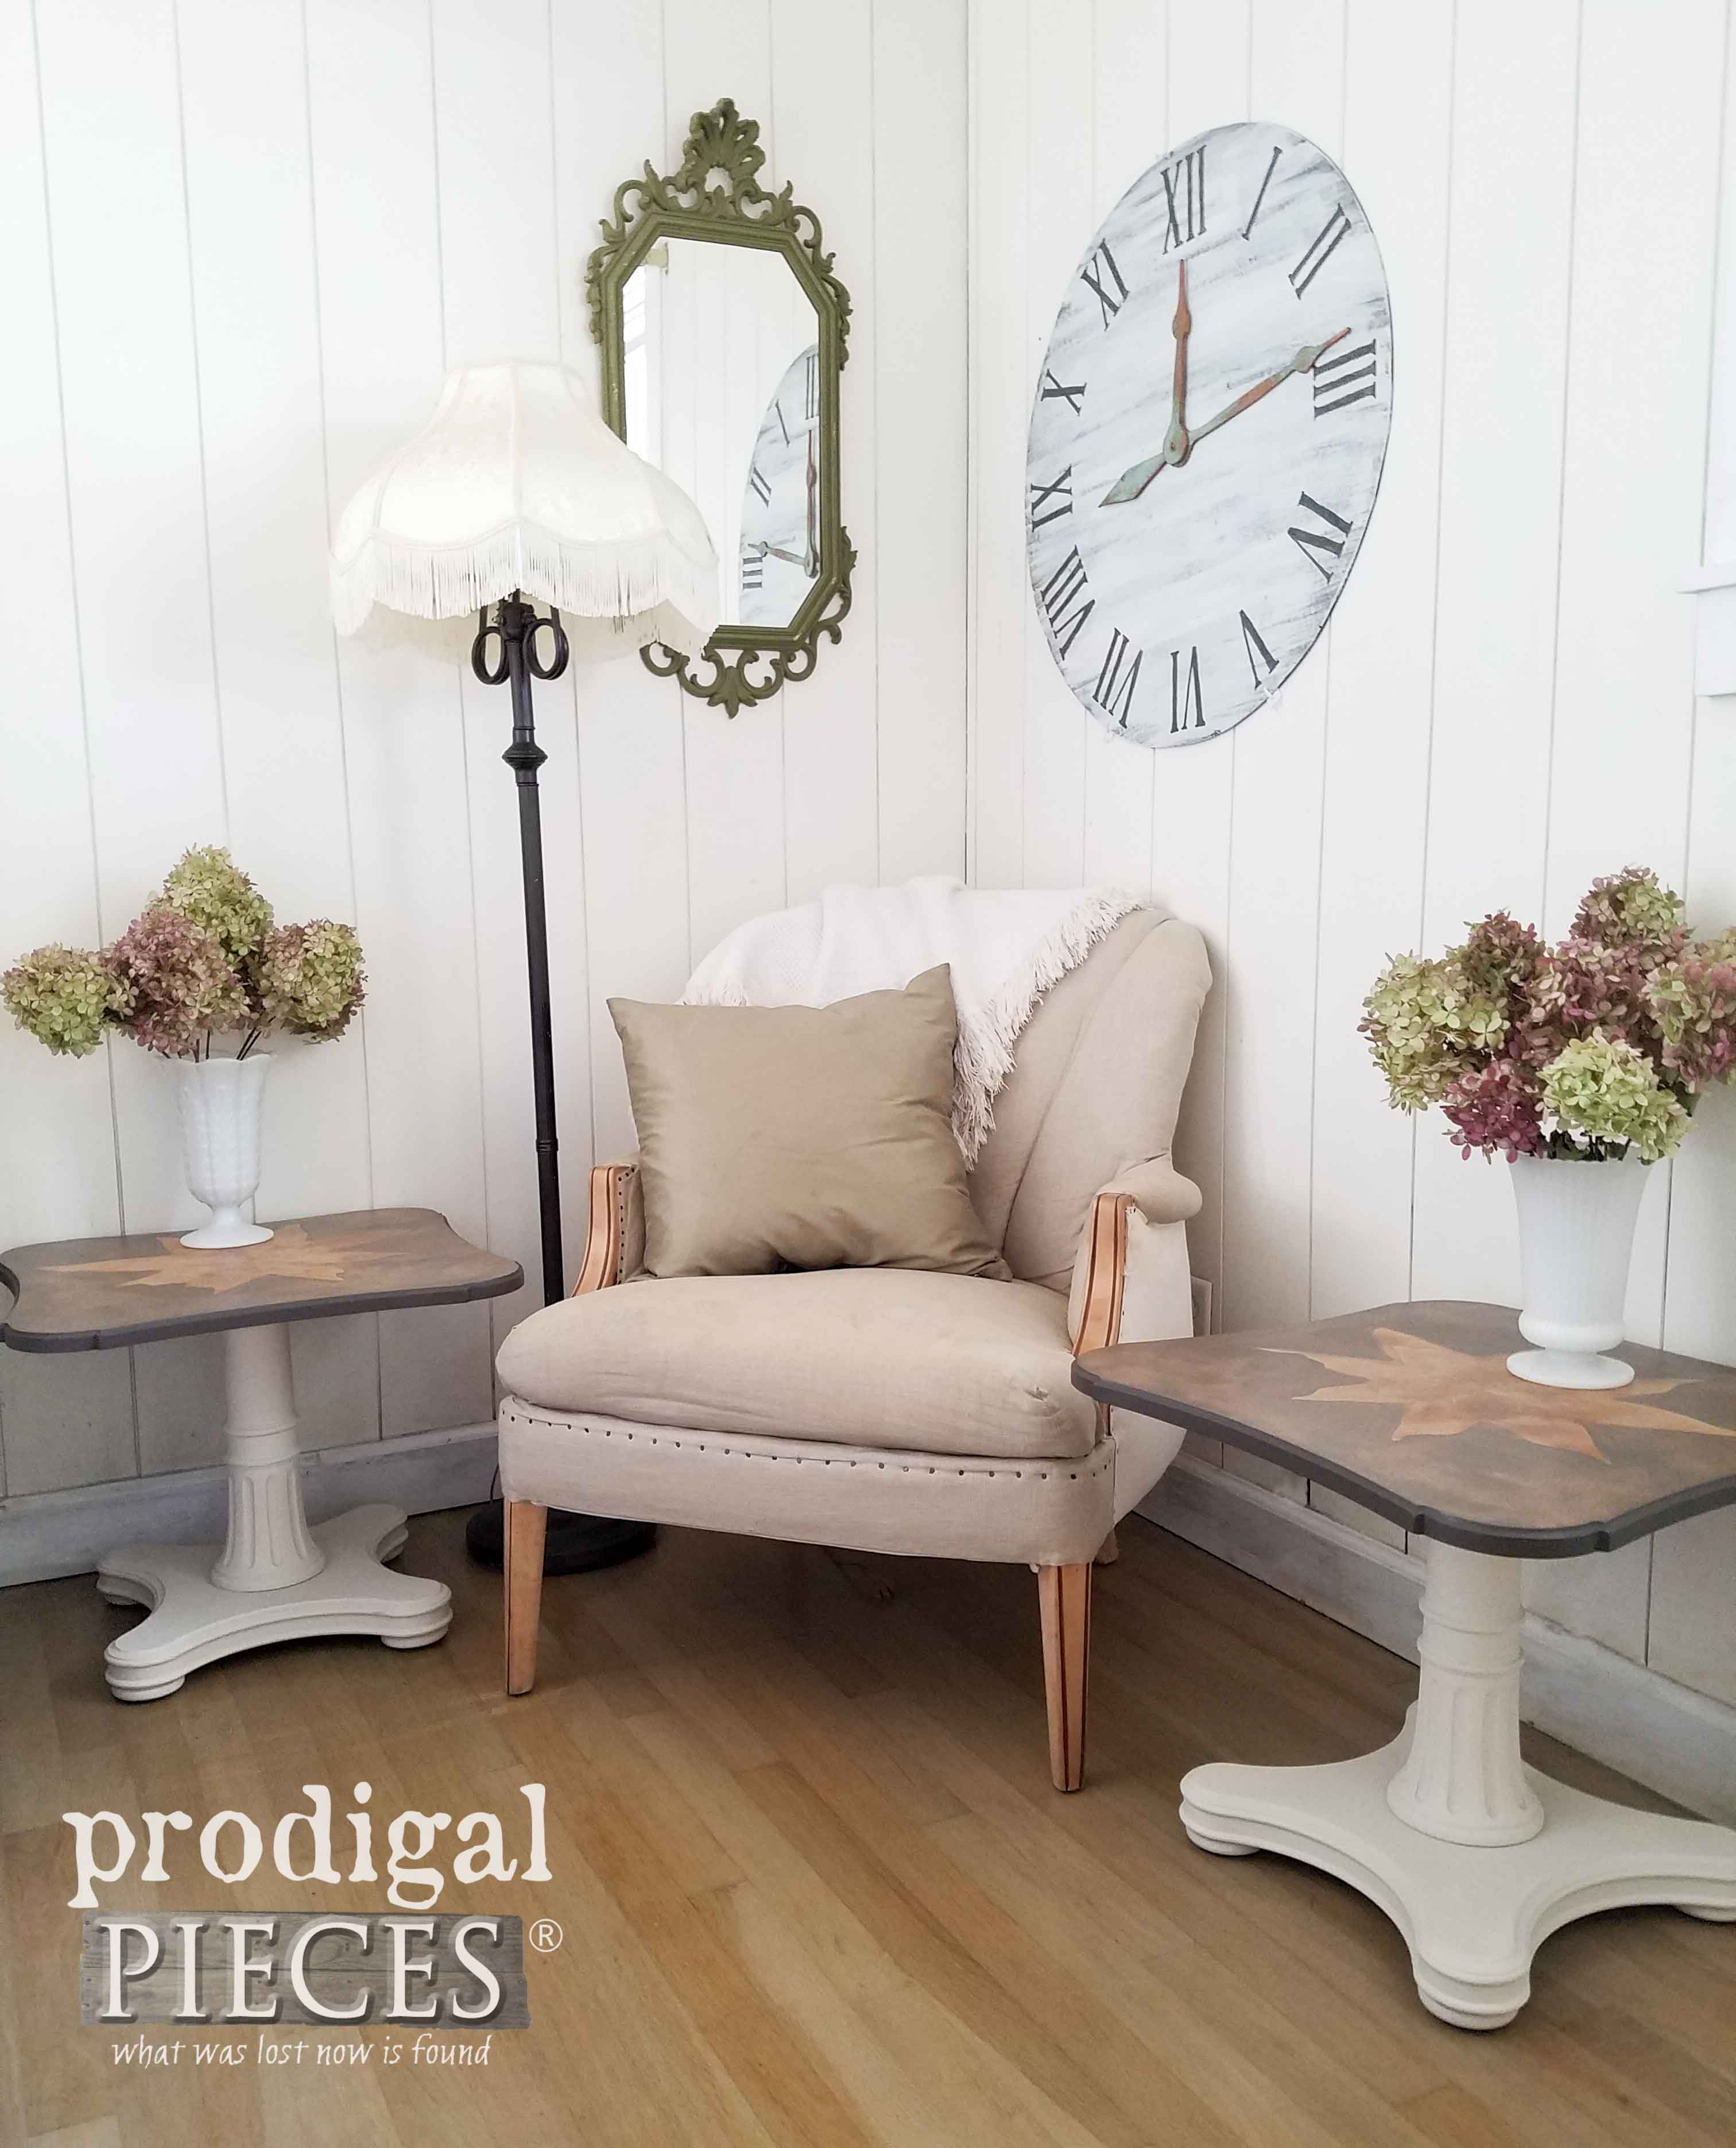 These refurbished thrift store end tables compliment the neutral decor in this space.